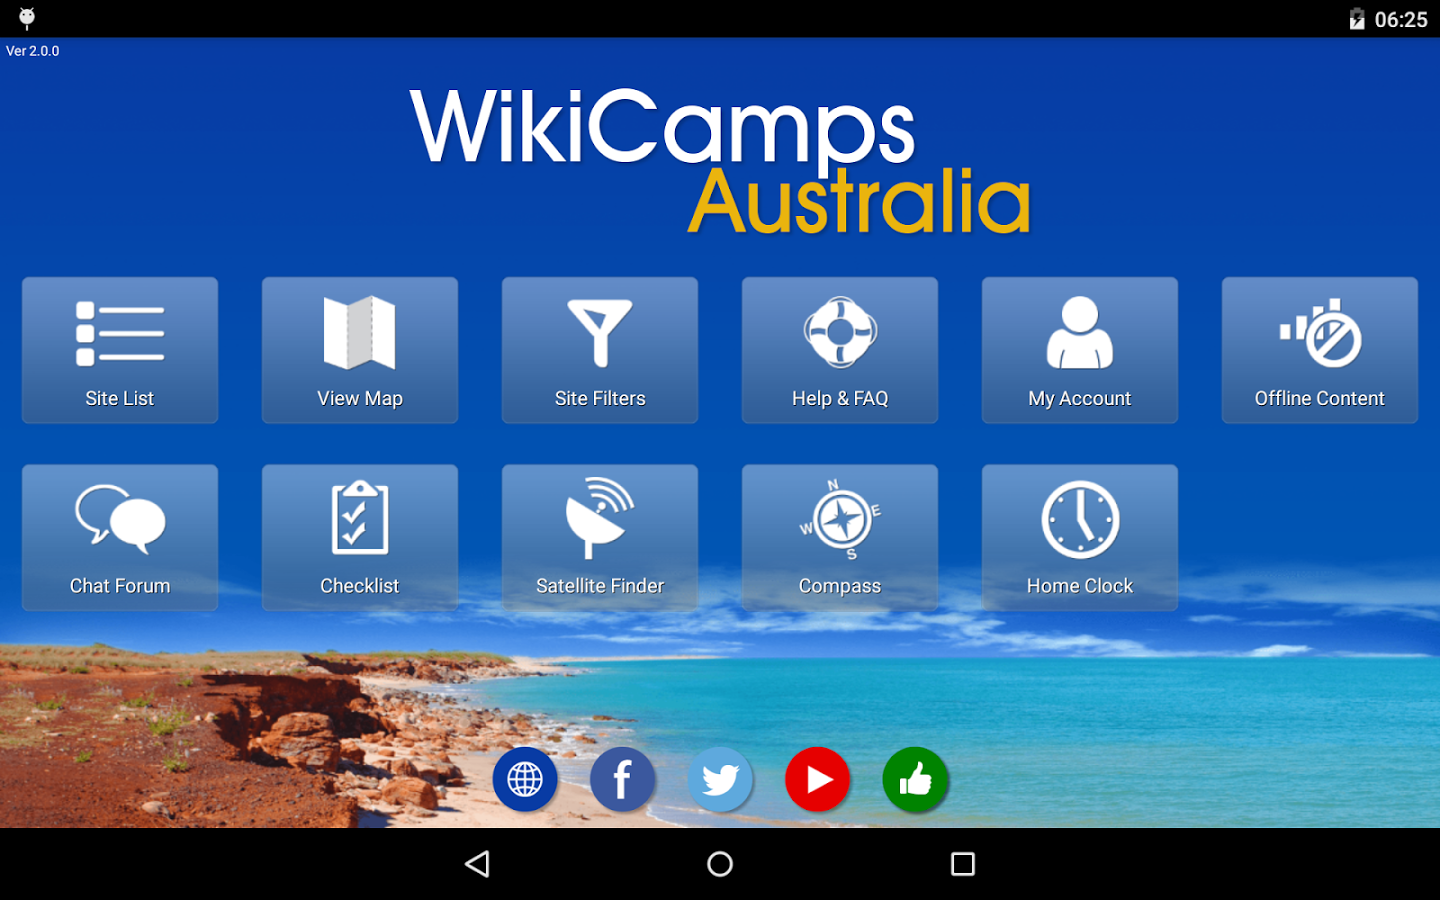 Australian Travel Apps in 2016